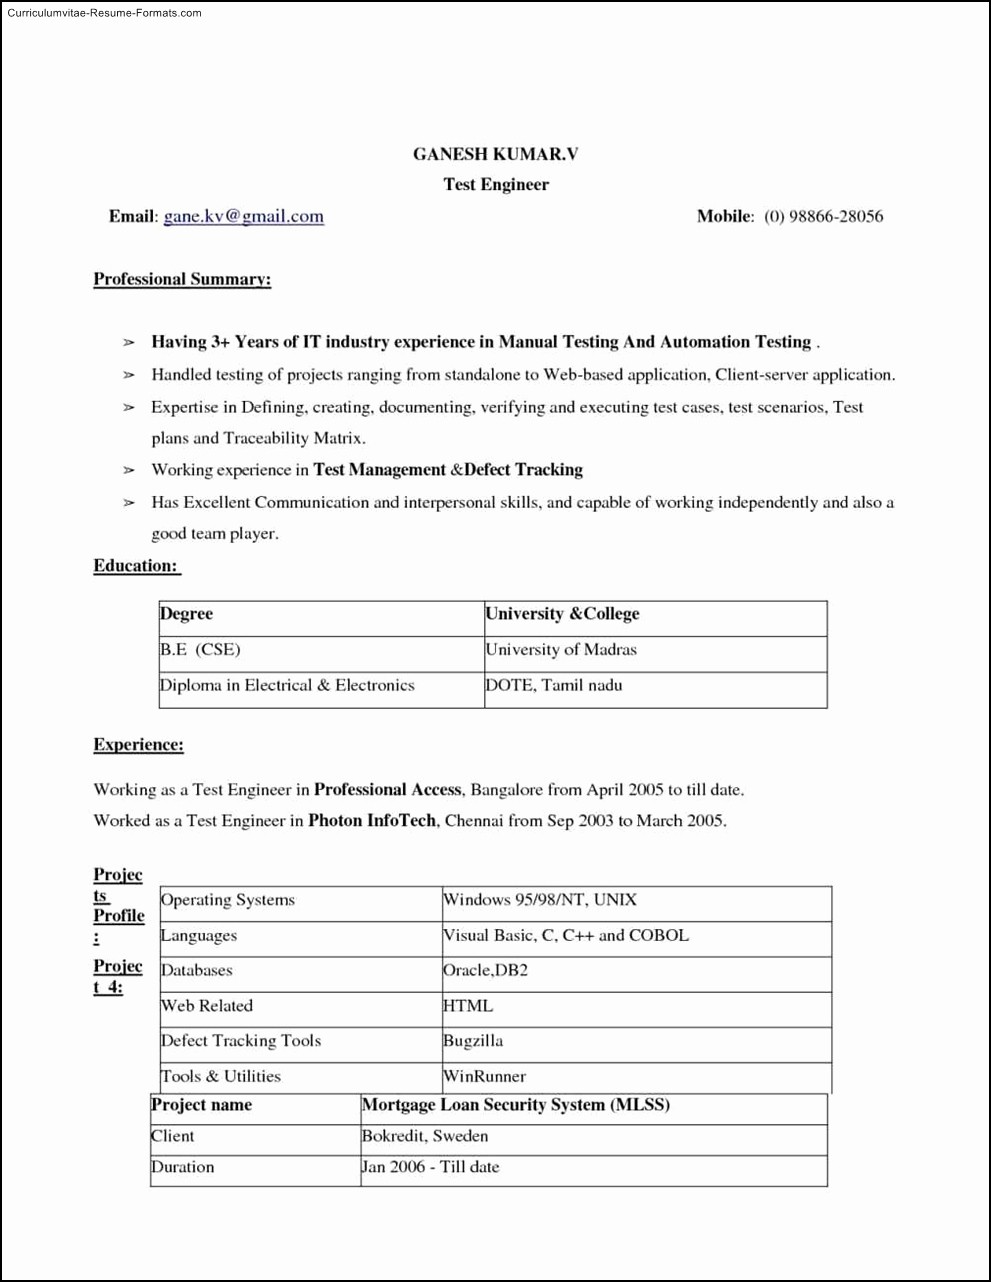 Microsoft Word 2010 Resume Templates New Ms Word 2010 Resume Templates Free Samples Examples